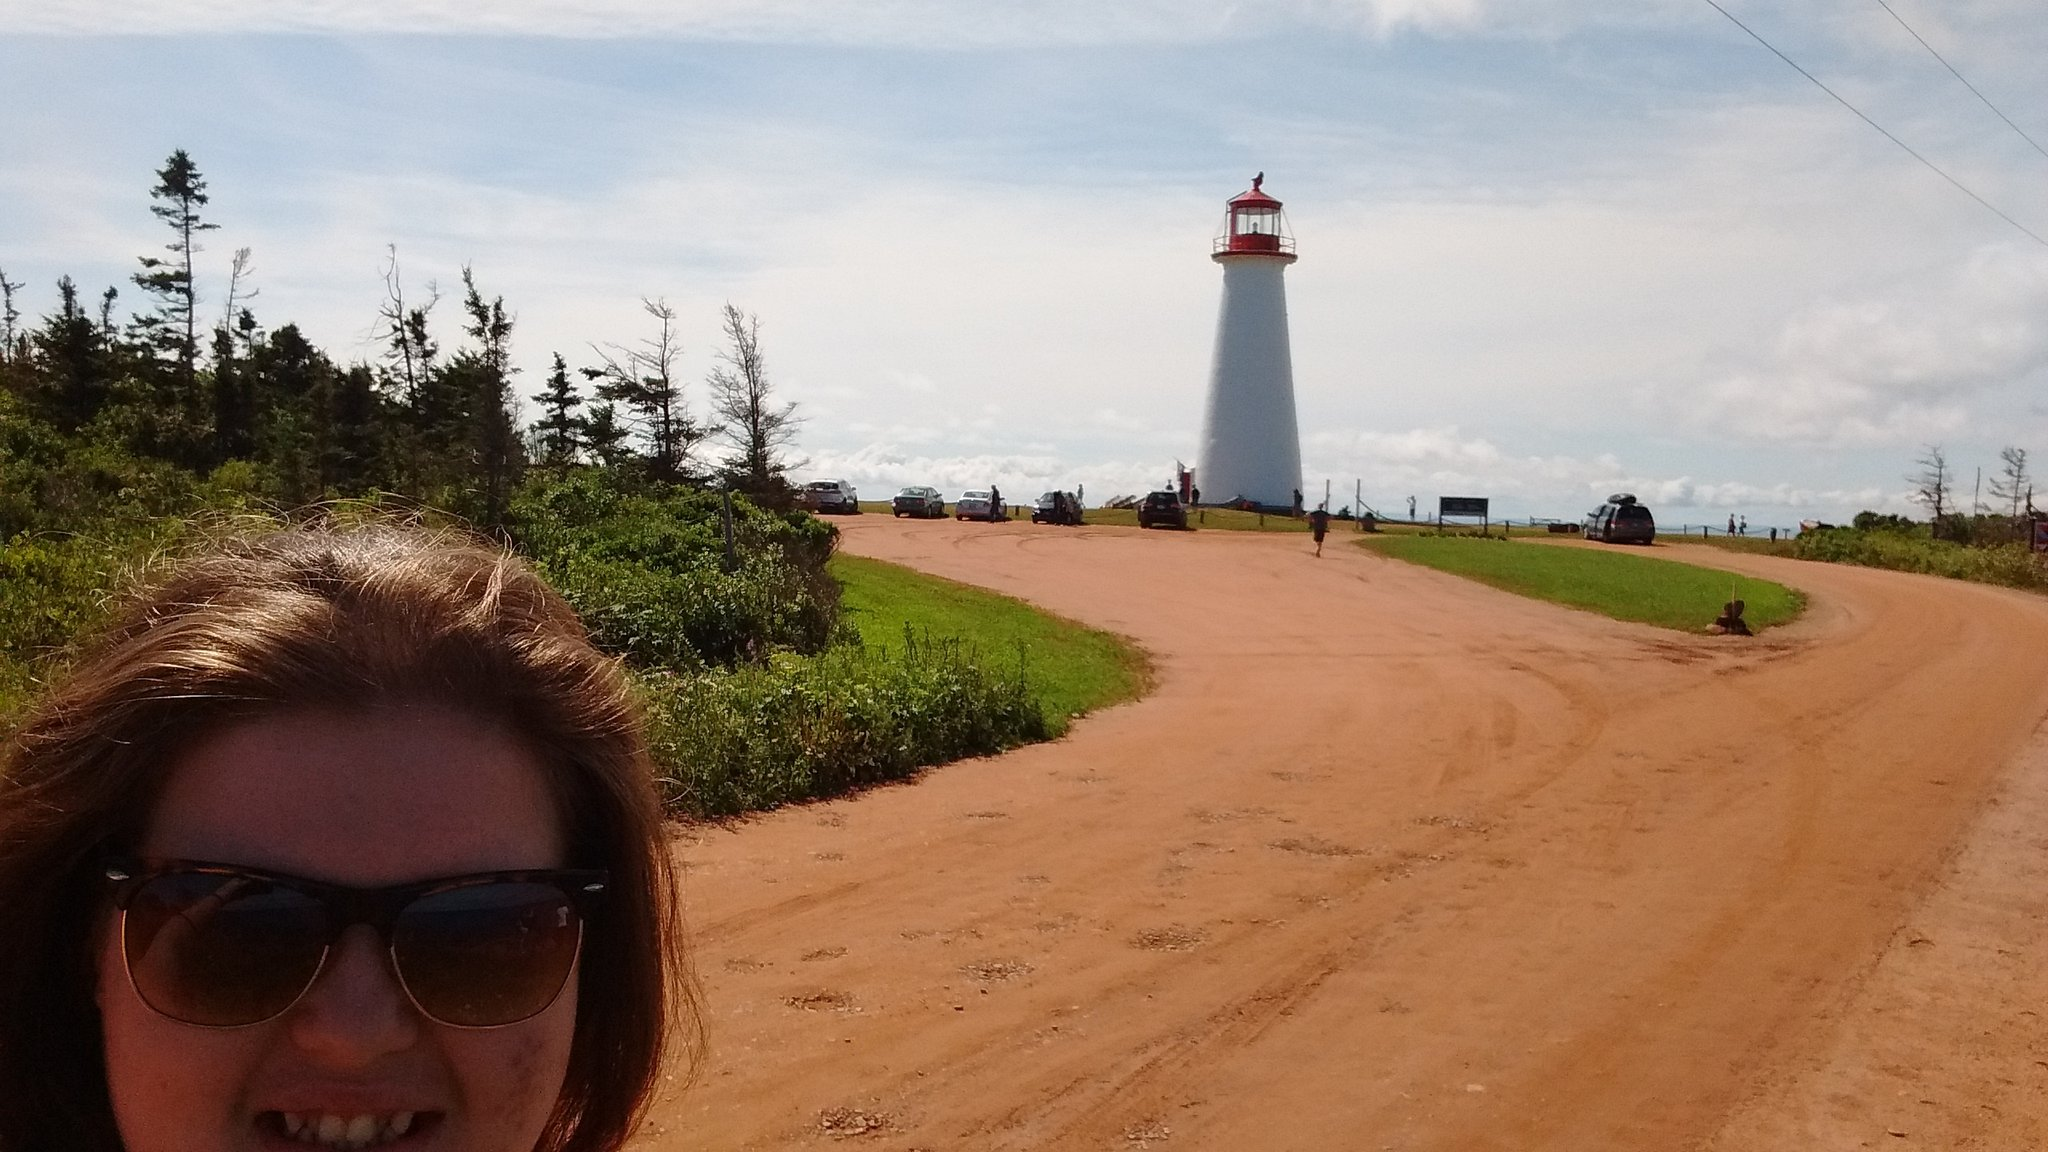 What another amazing beautiful day in PEI, so fun exploring and seeing everything #clay2016 #pointprim https://t.co/01e6wOOjAH